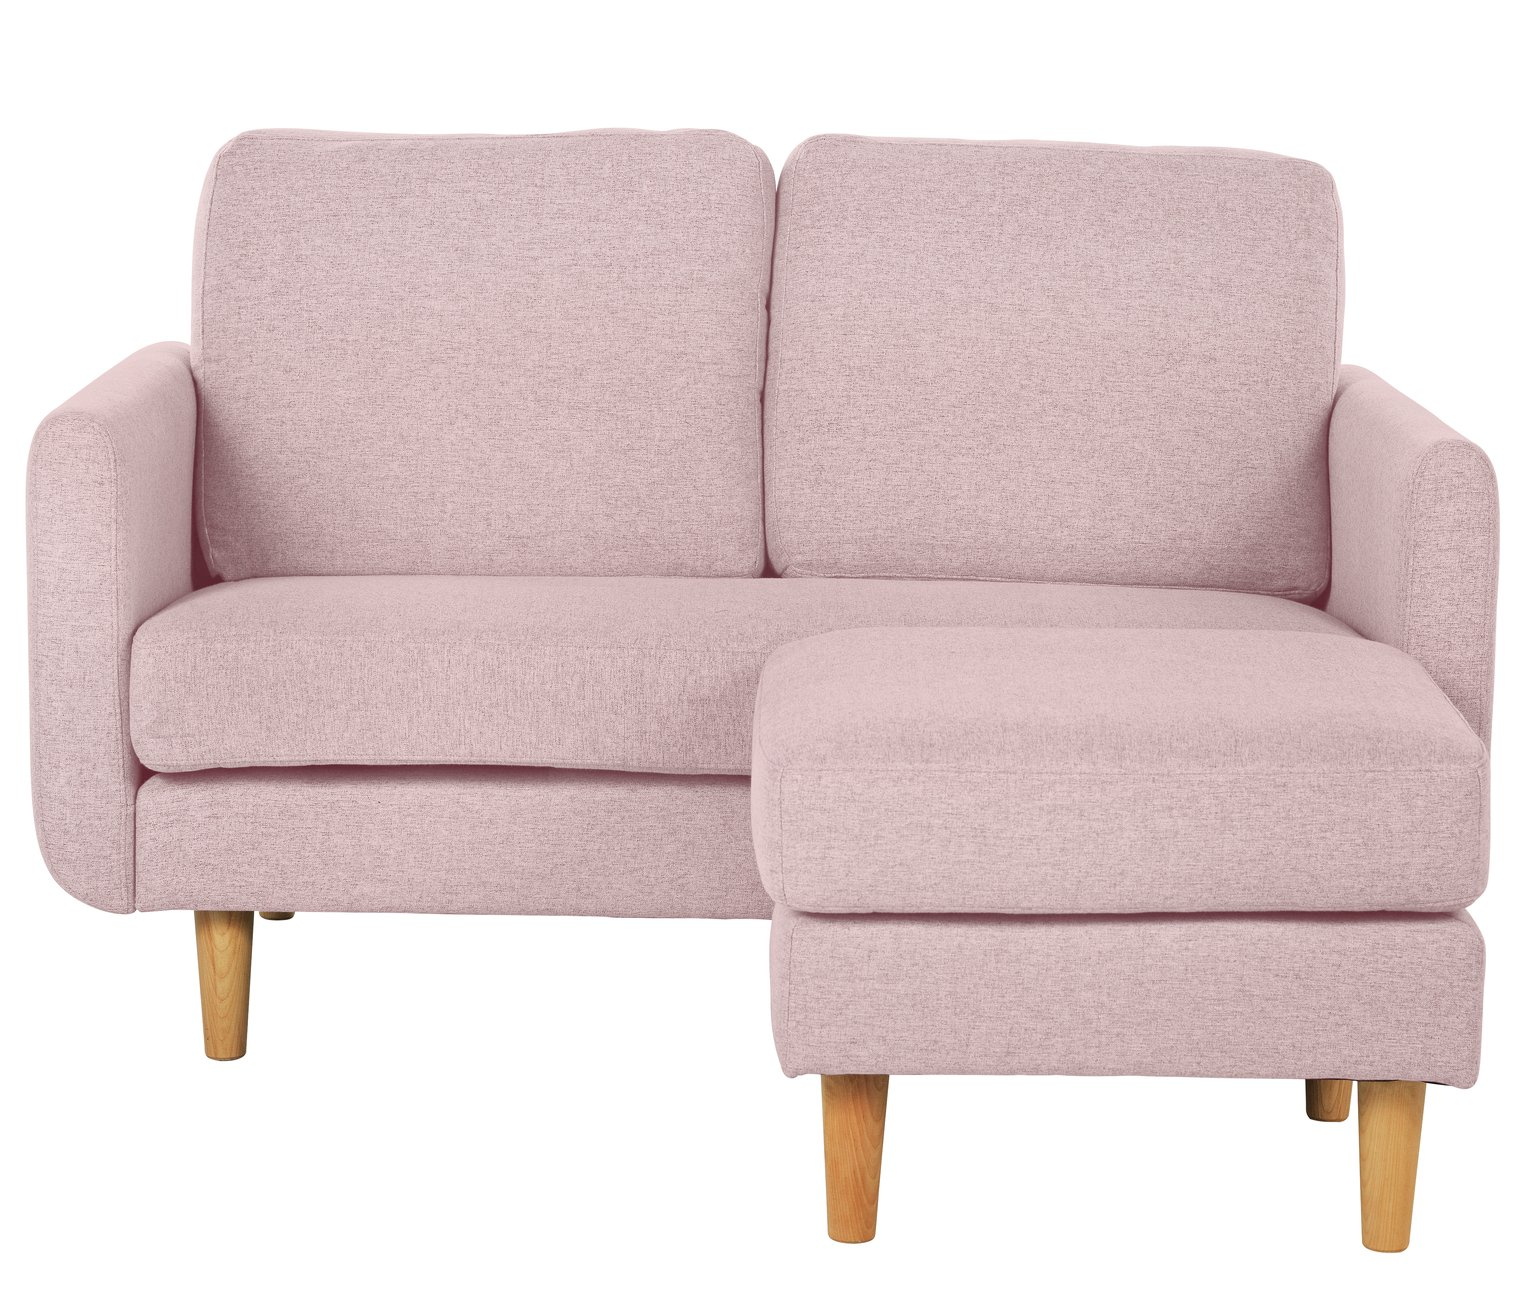 Argos Home Remi 2 Seater Fabric Chaise in a Box - Pink